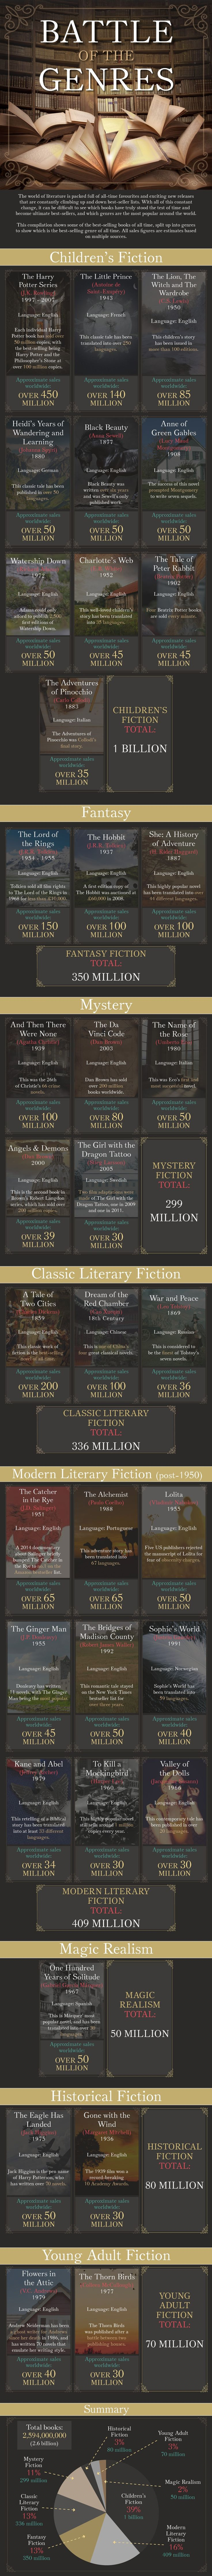 Most popular book genres of all time